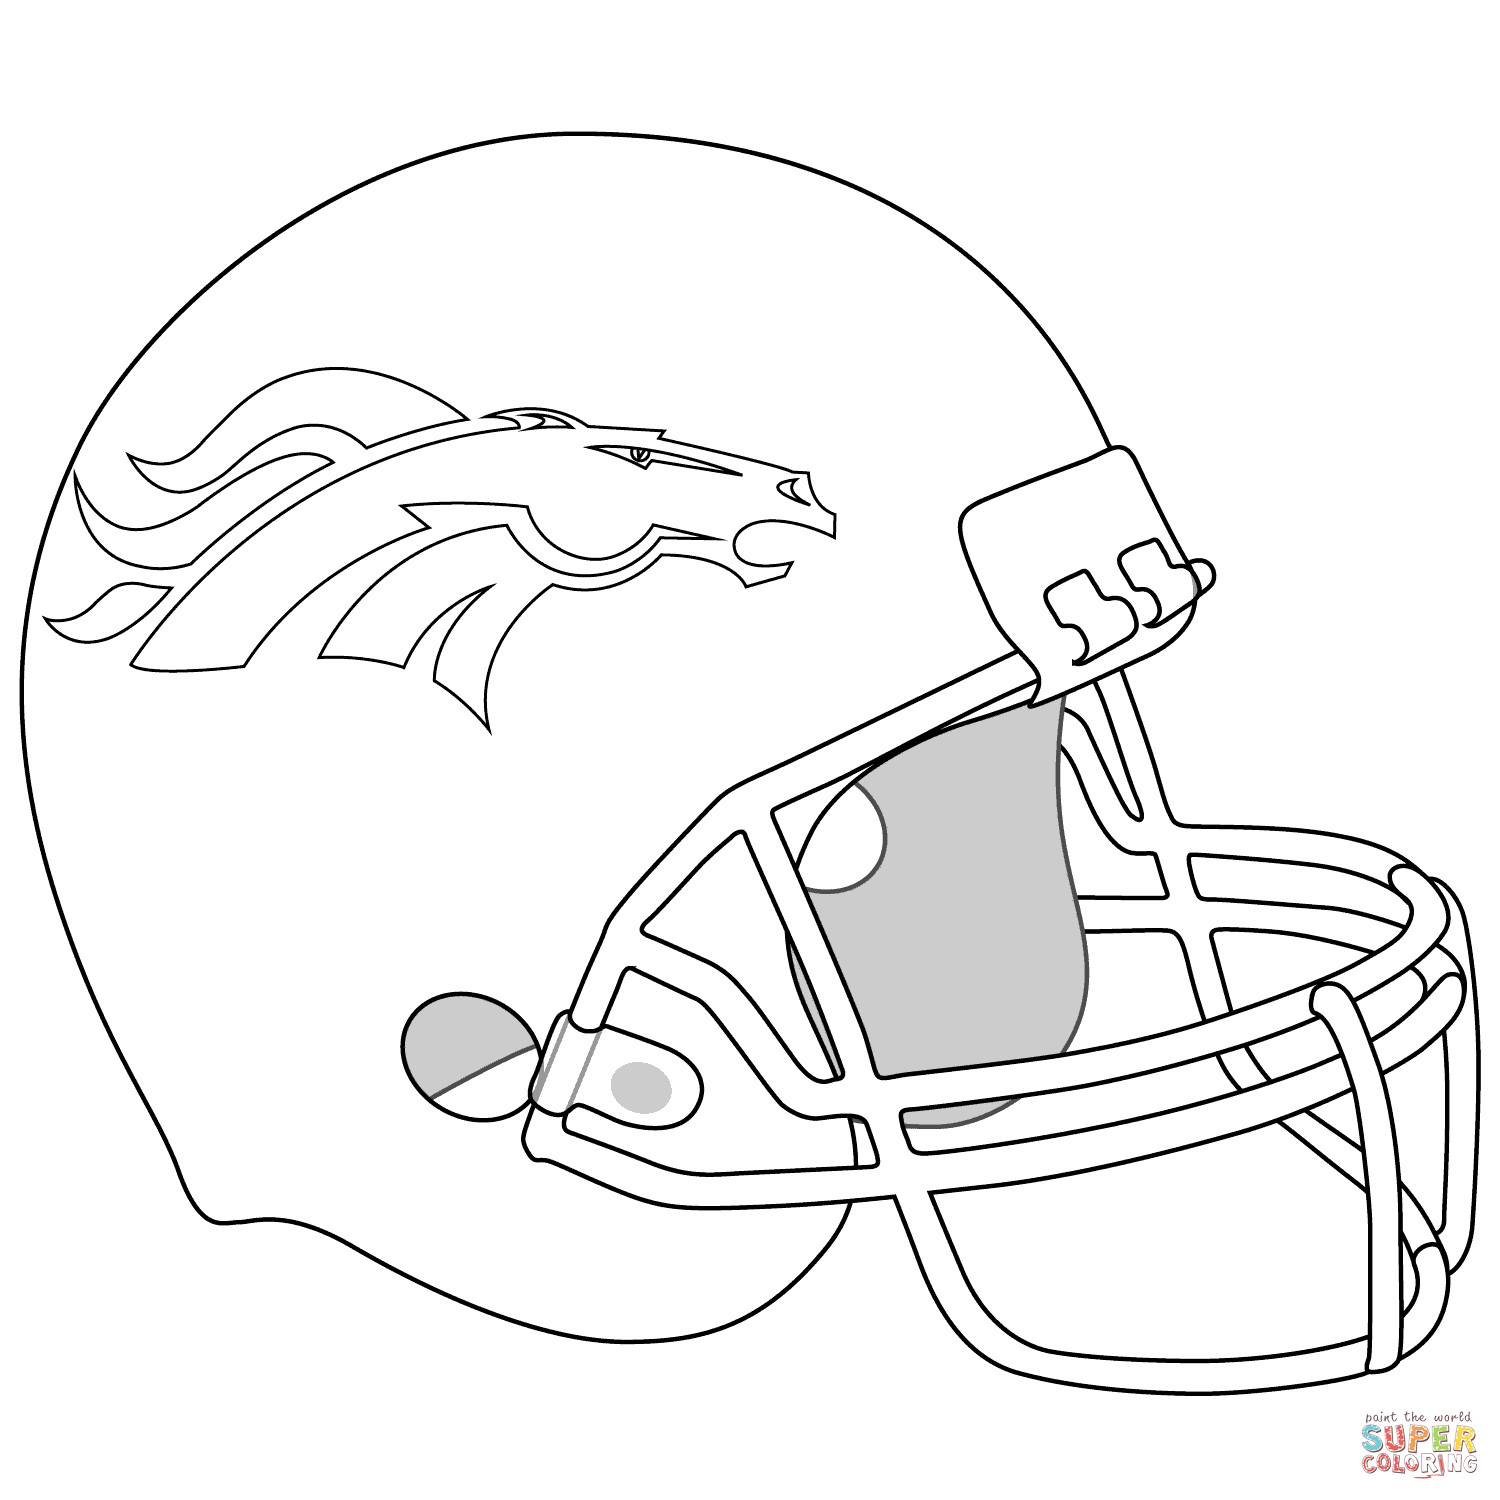 1500x1500 Carolina Panthers Helmet Coloring Page Free Printable Coloring Pages